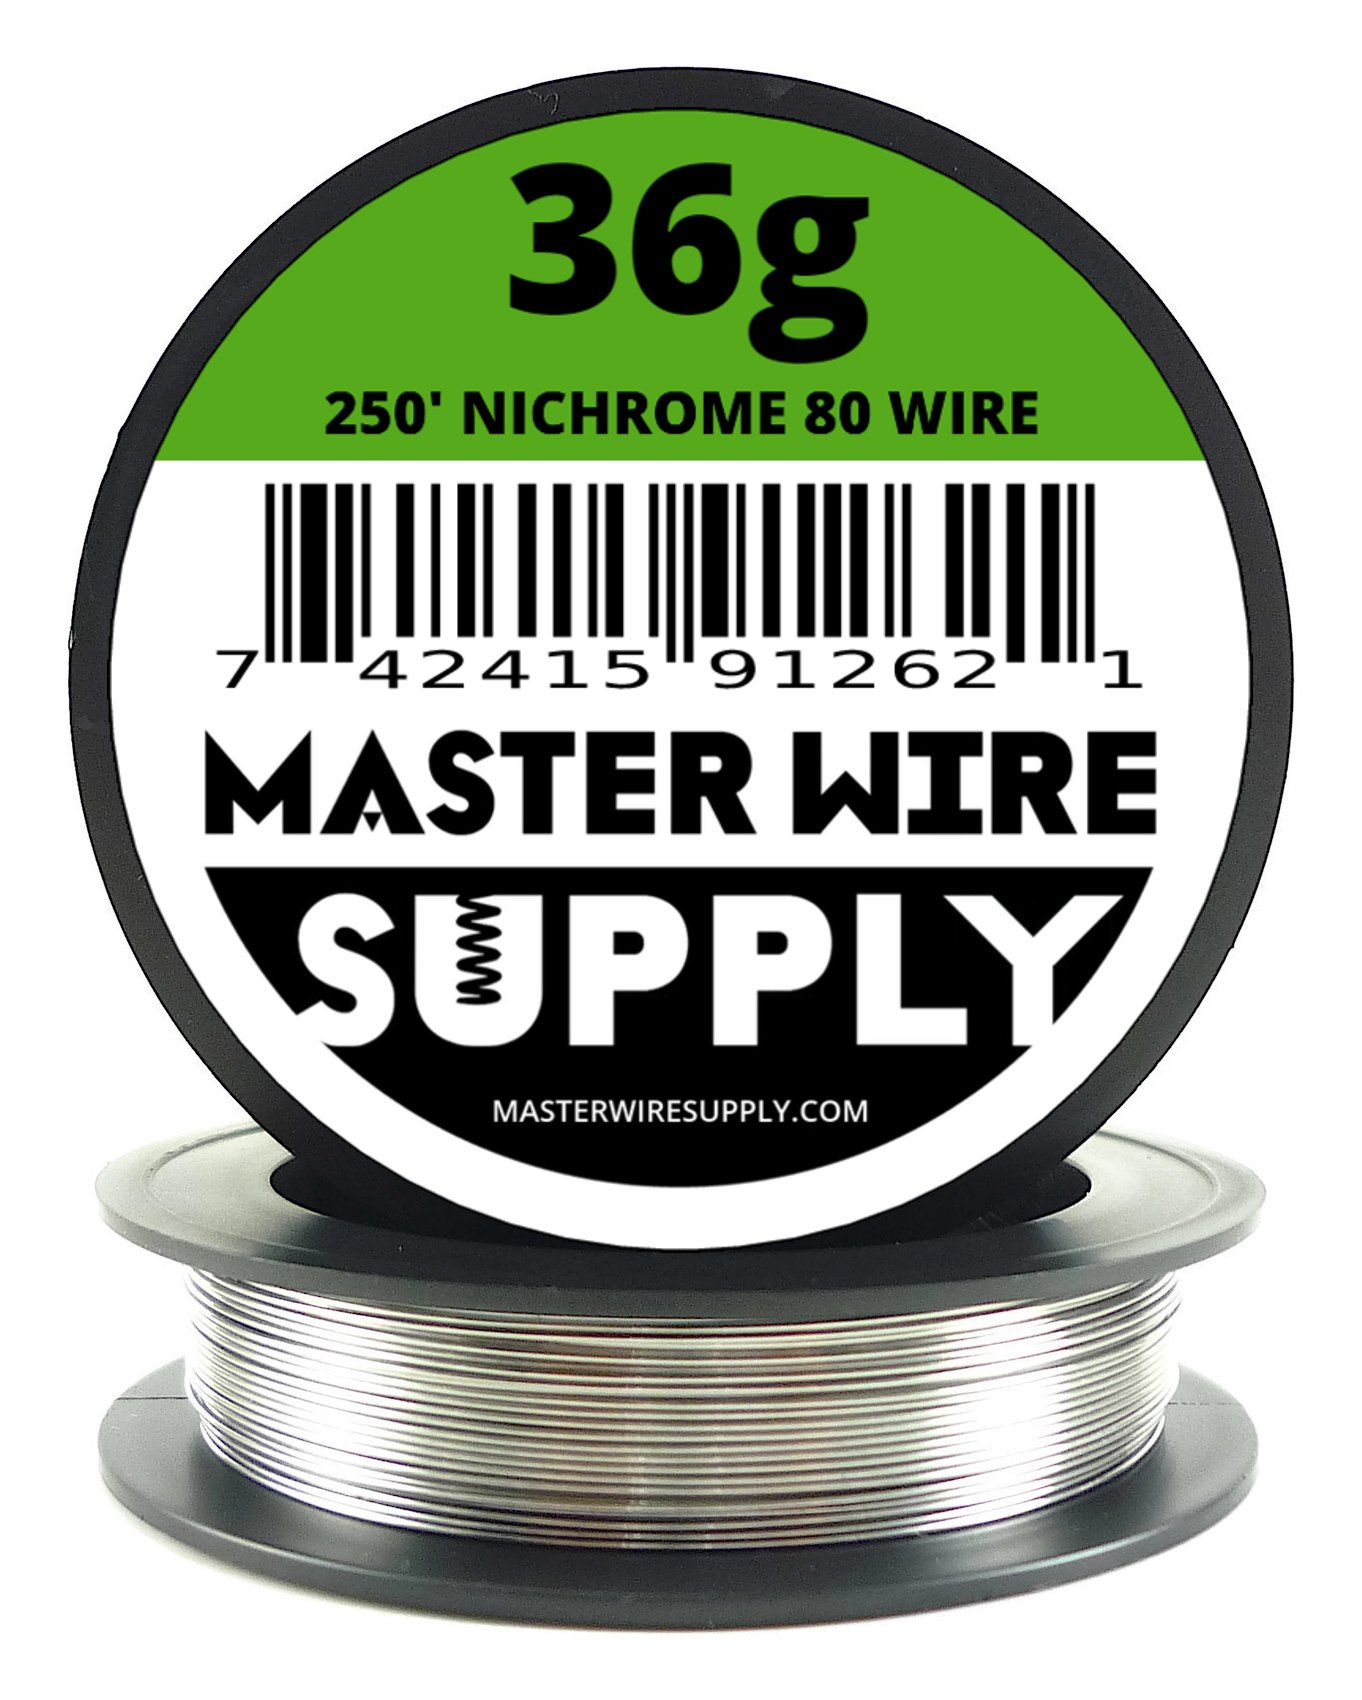 Nichrome 80-250' - 36 Gauge Resistance Wire